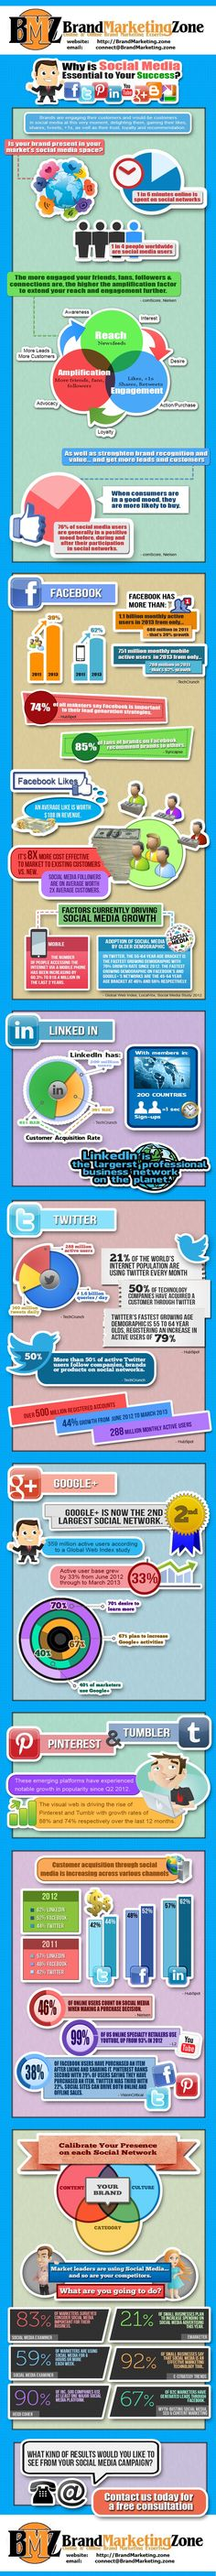 Brand Marketing Zone Ltd. Infographics explaining why Social Media Optimization is essential today and how to get customers and sales from social media networks. Send us a message for details and pricing and to schedule your free consultation on social media optimization. http://brandmarketing.zone/